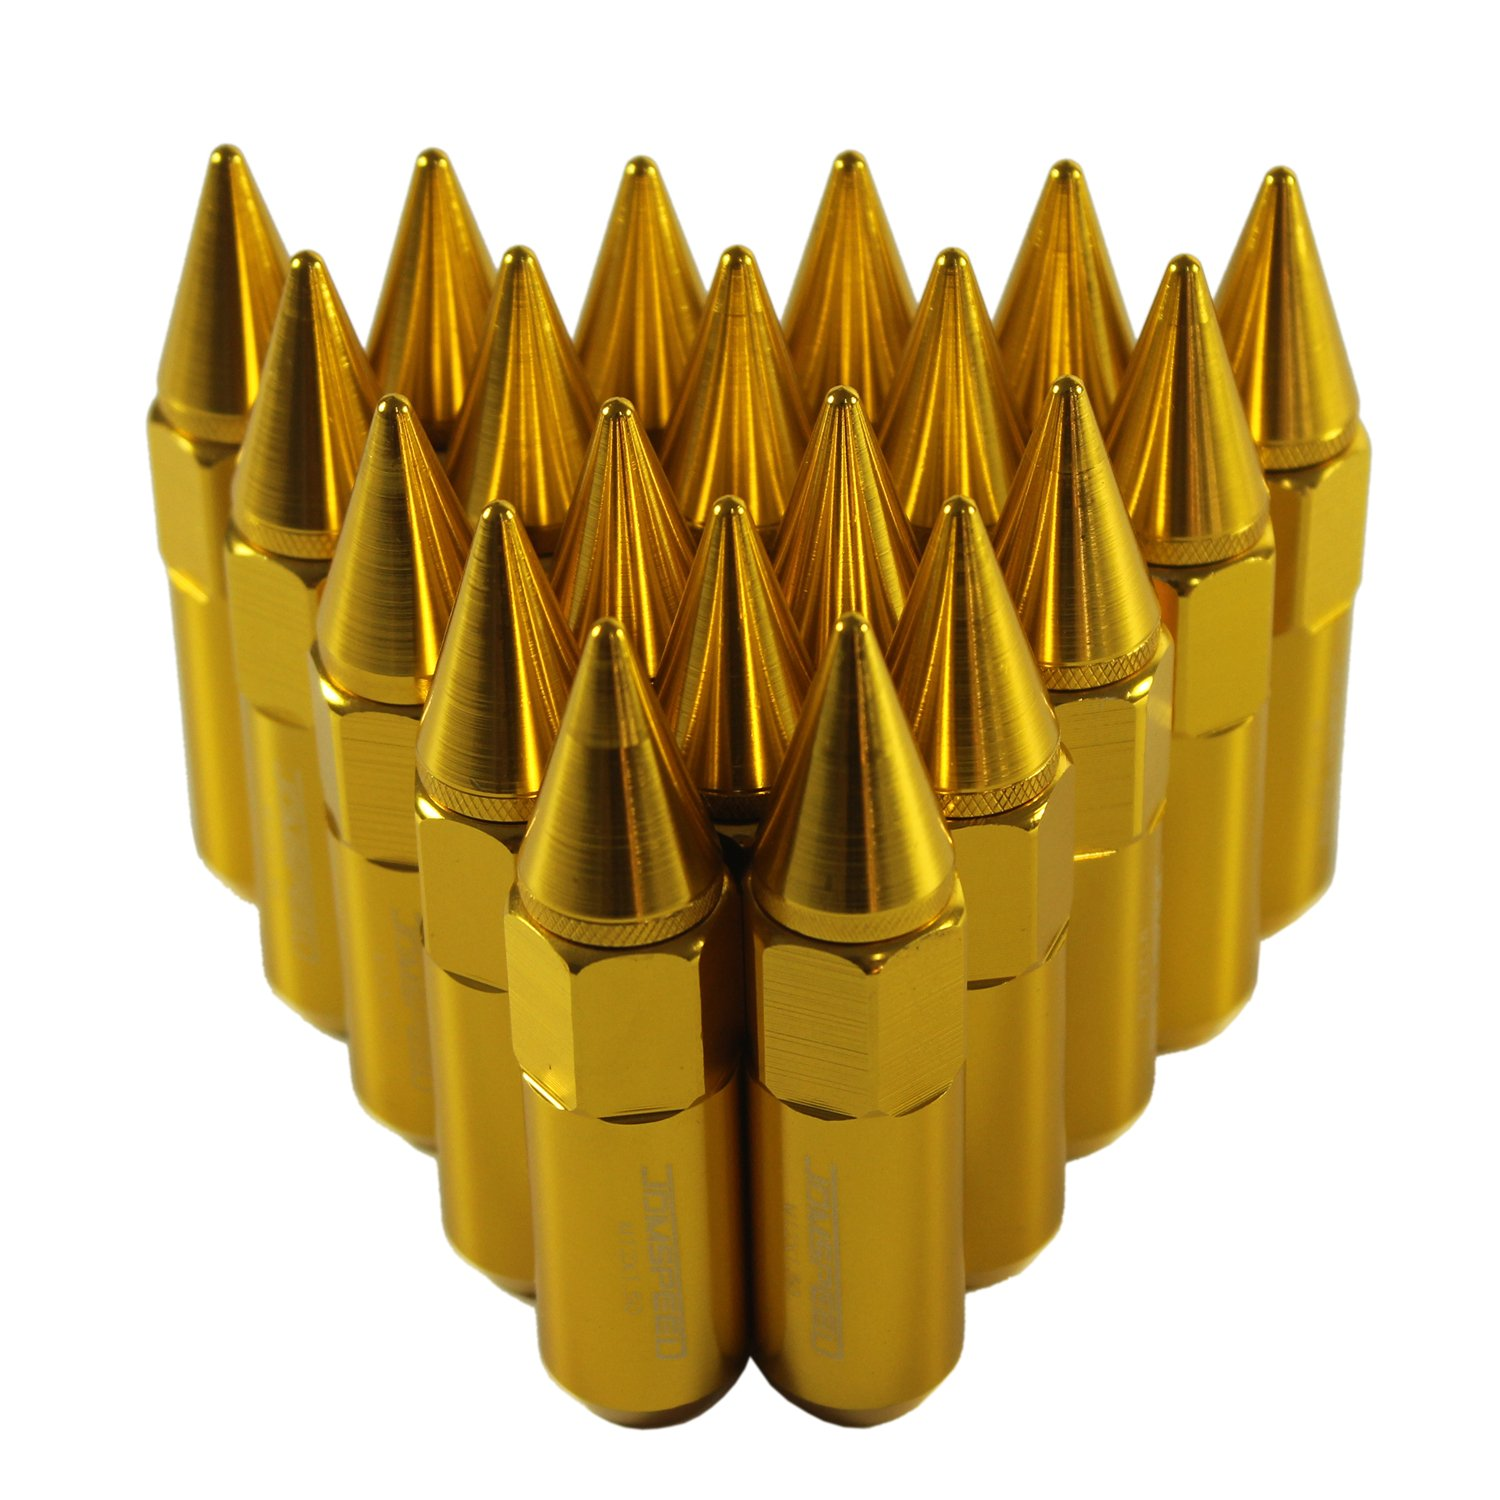 JDMSPEED New Gold 20PCS M12X1.5 Cap Spiked Extended Tuner 60mm Aluminum Wheels Rims Lug Nuts by JDMSPEED